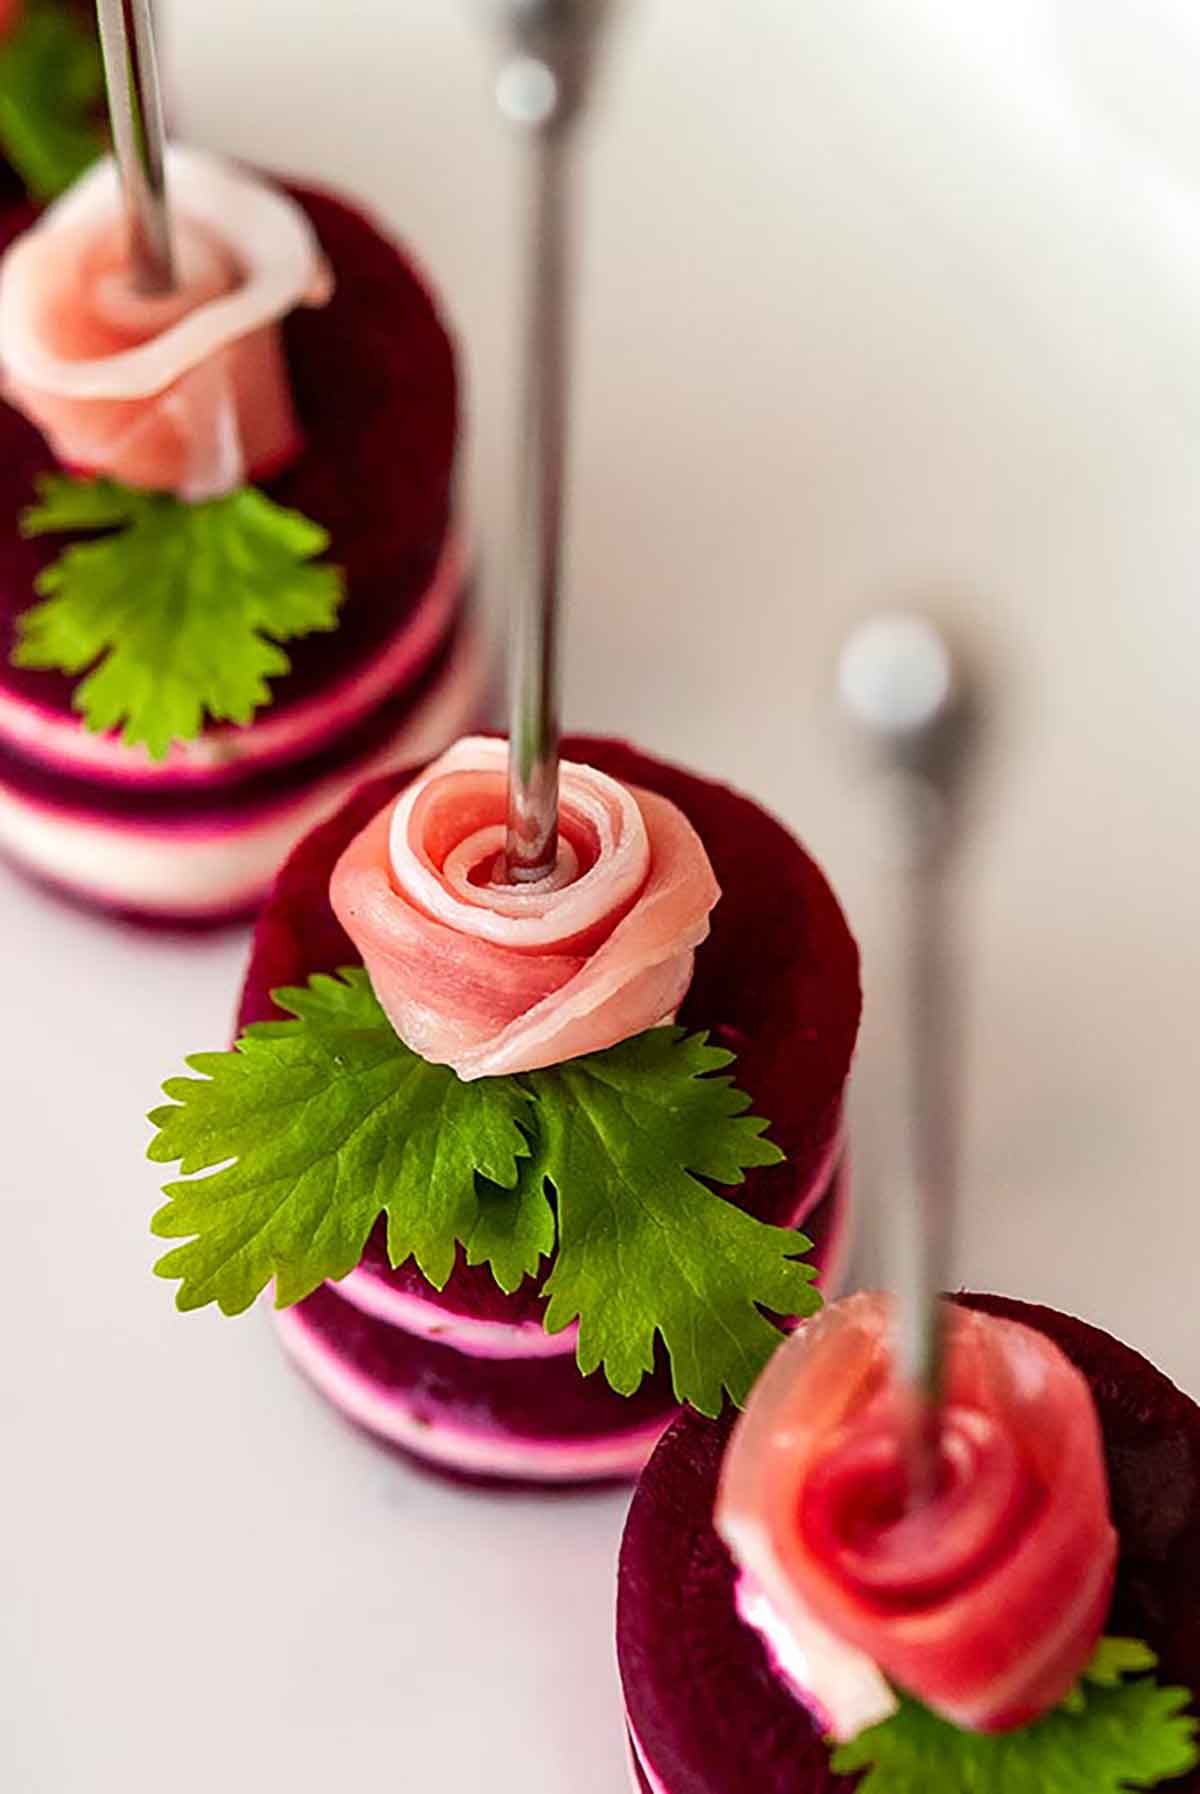 3 small beet napoleons, with a prosciutto rose and cilantro leaf on top, with cocktail pins through the center of the roses.